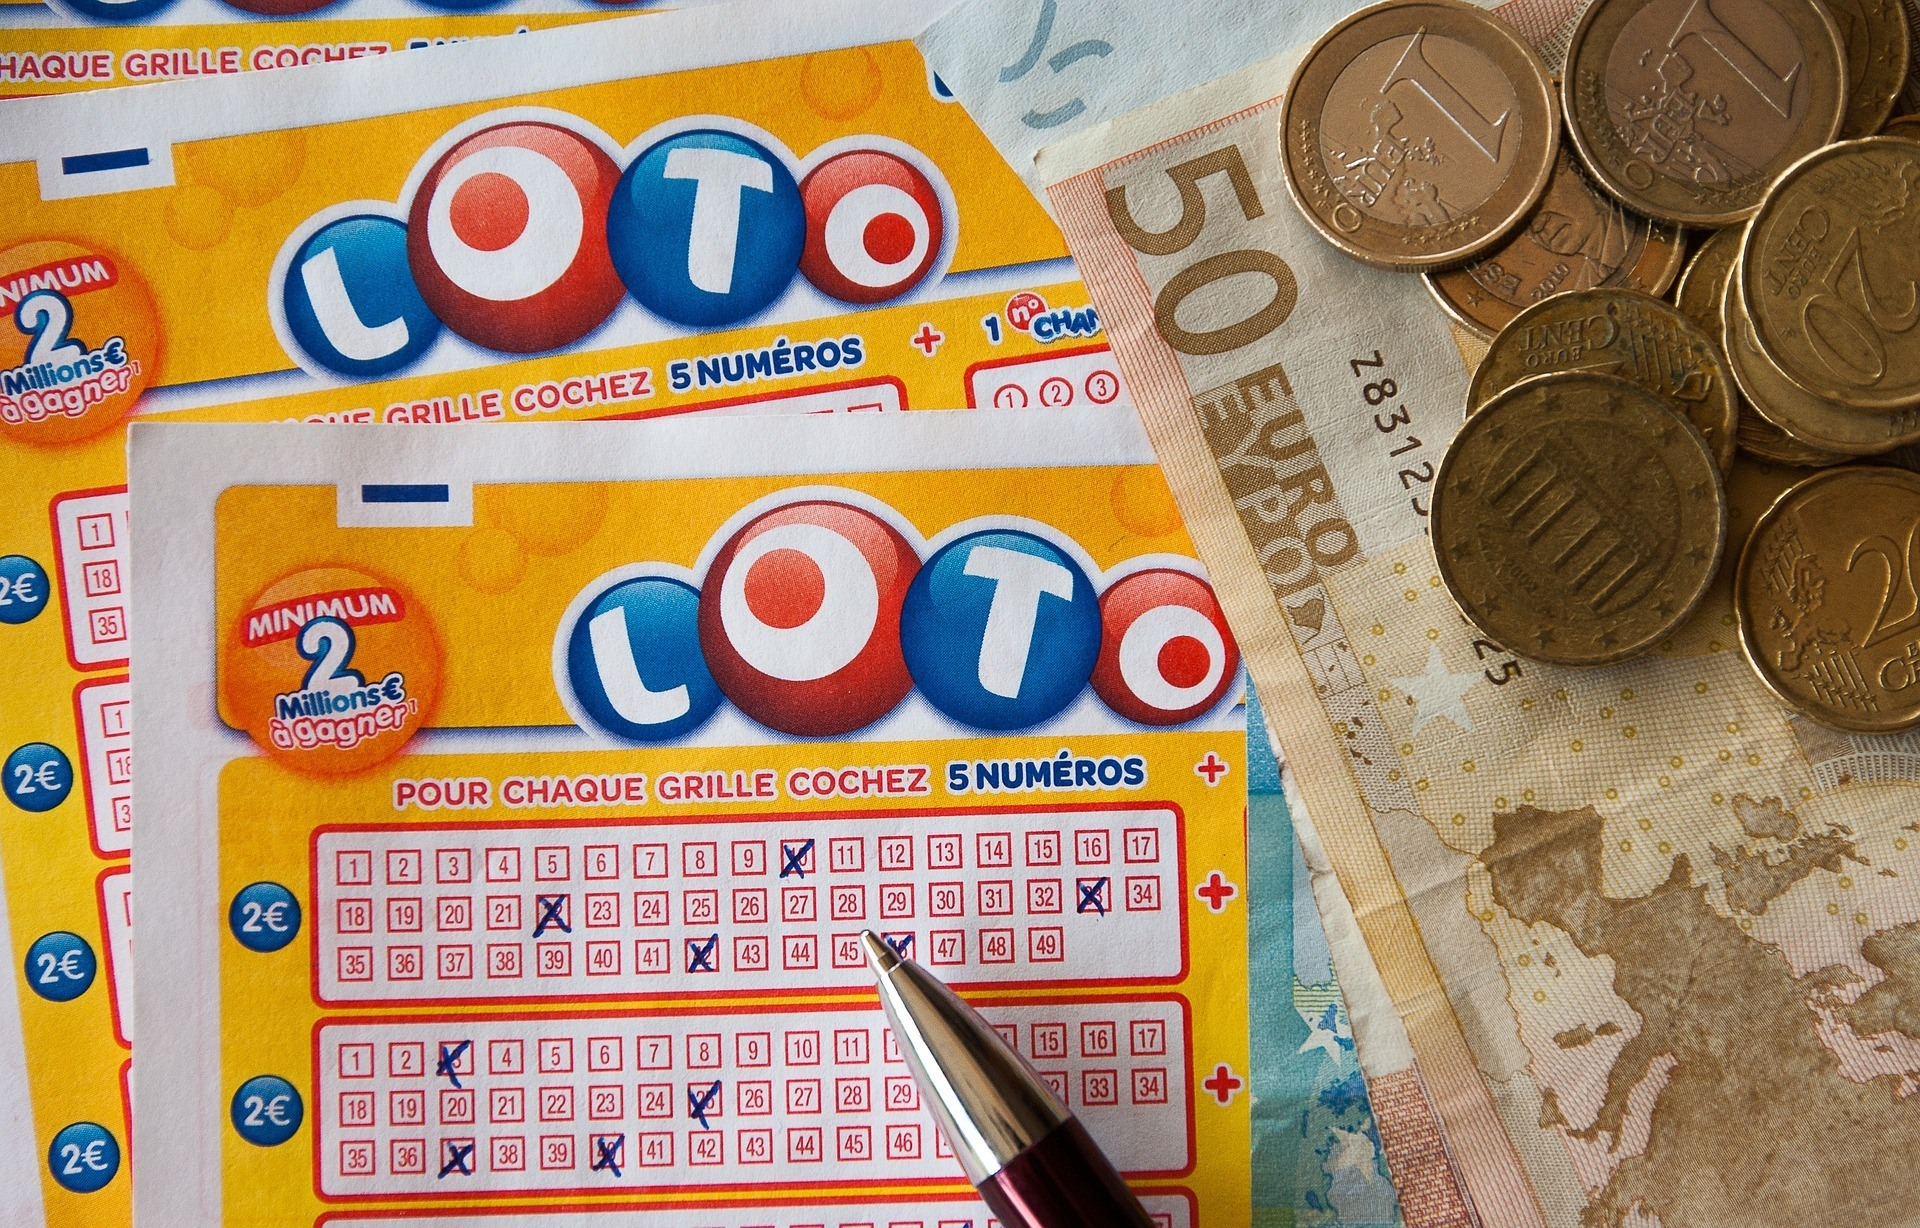 How to Win The Lottery Using the Law of Attraction - Jake Ducey